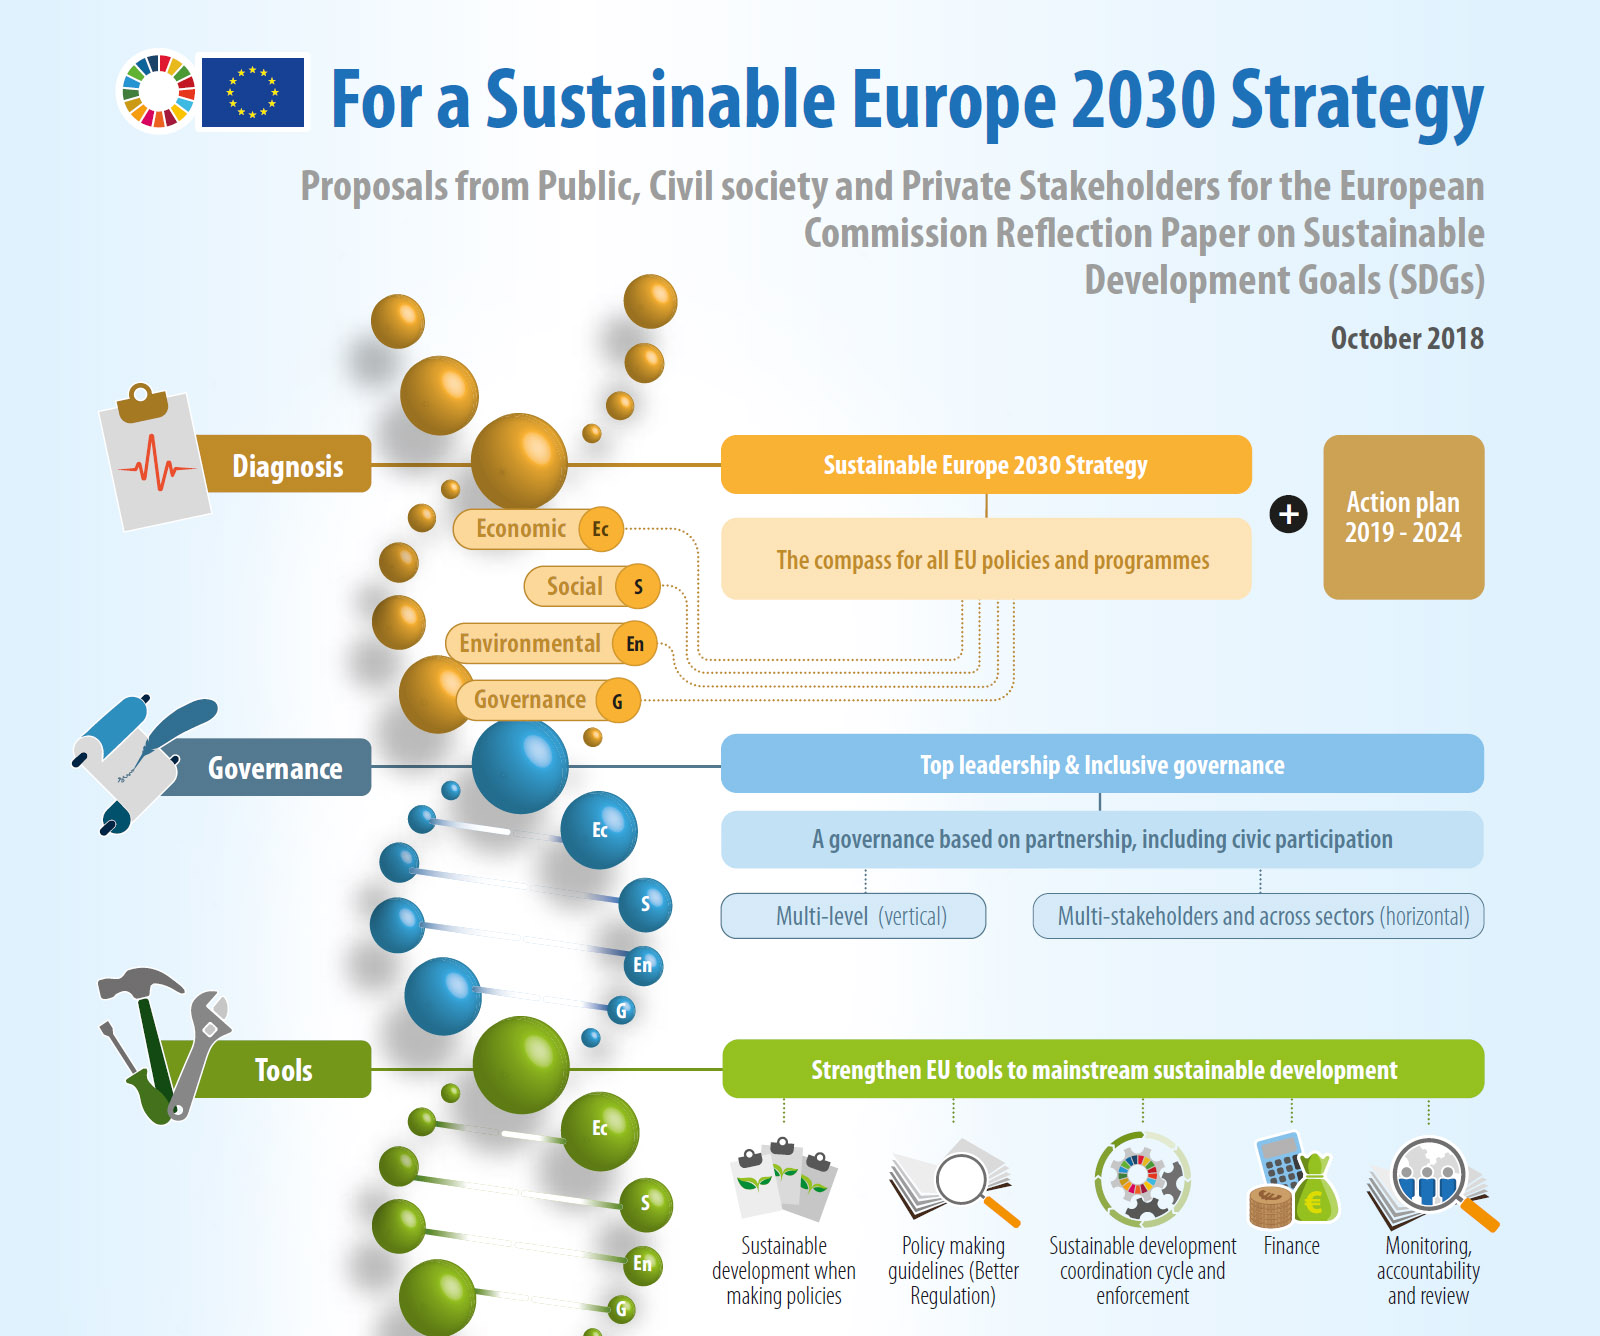 For a Sustainable Europe 2030 Strategy